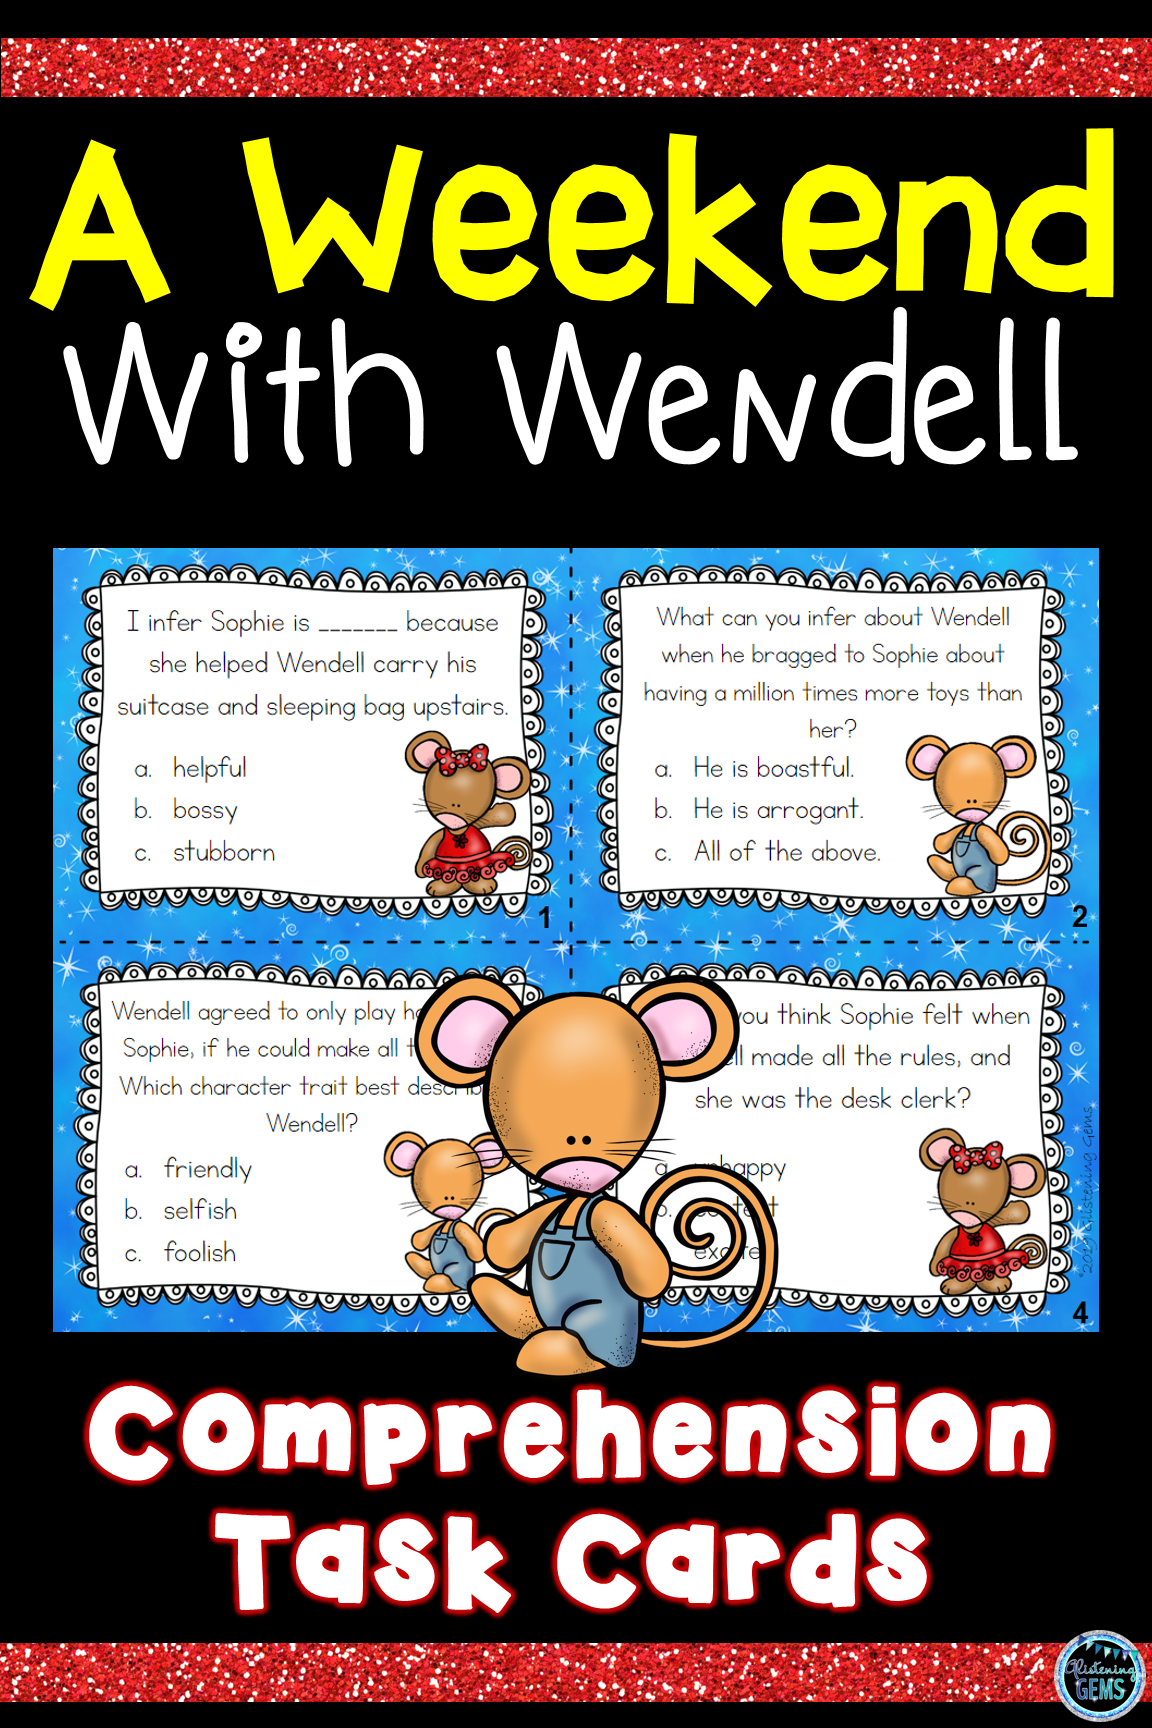 A Weekend With Wendell Character Traits Task Cards With